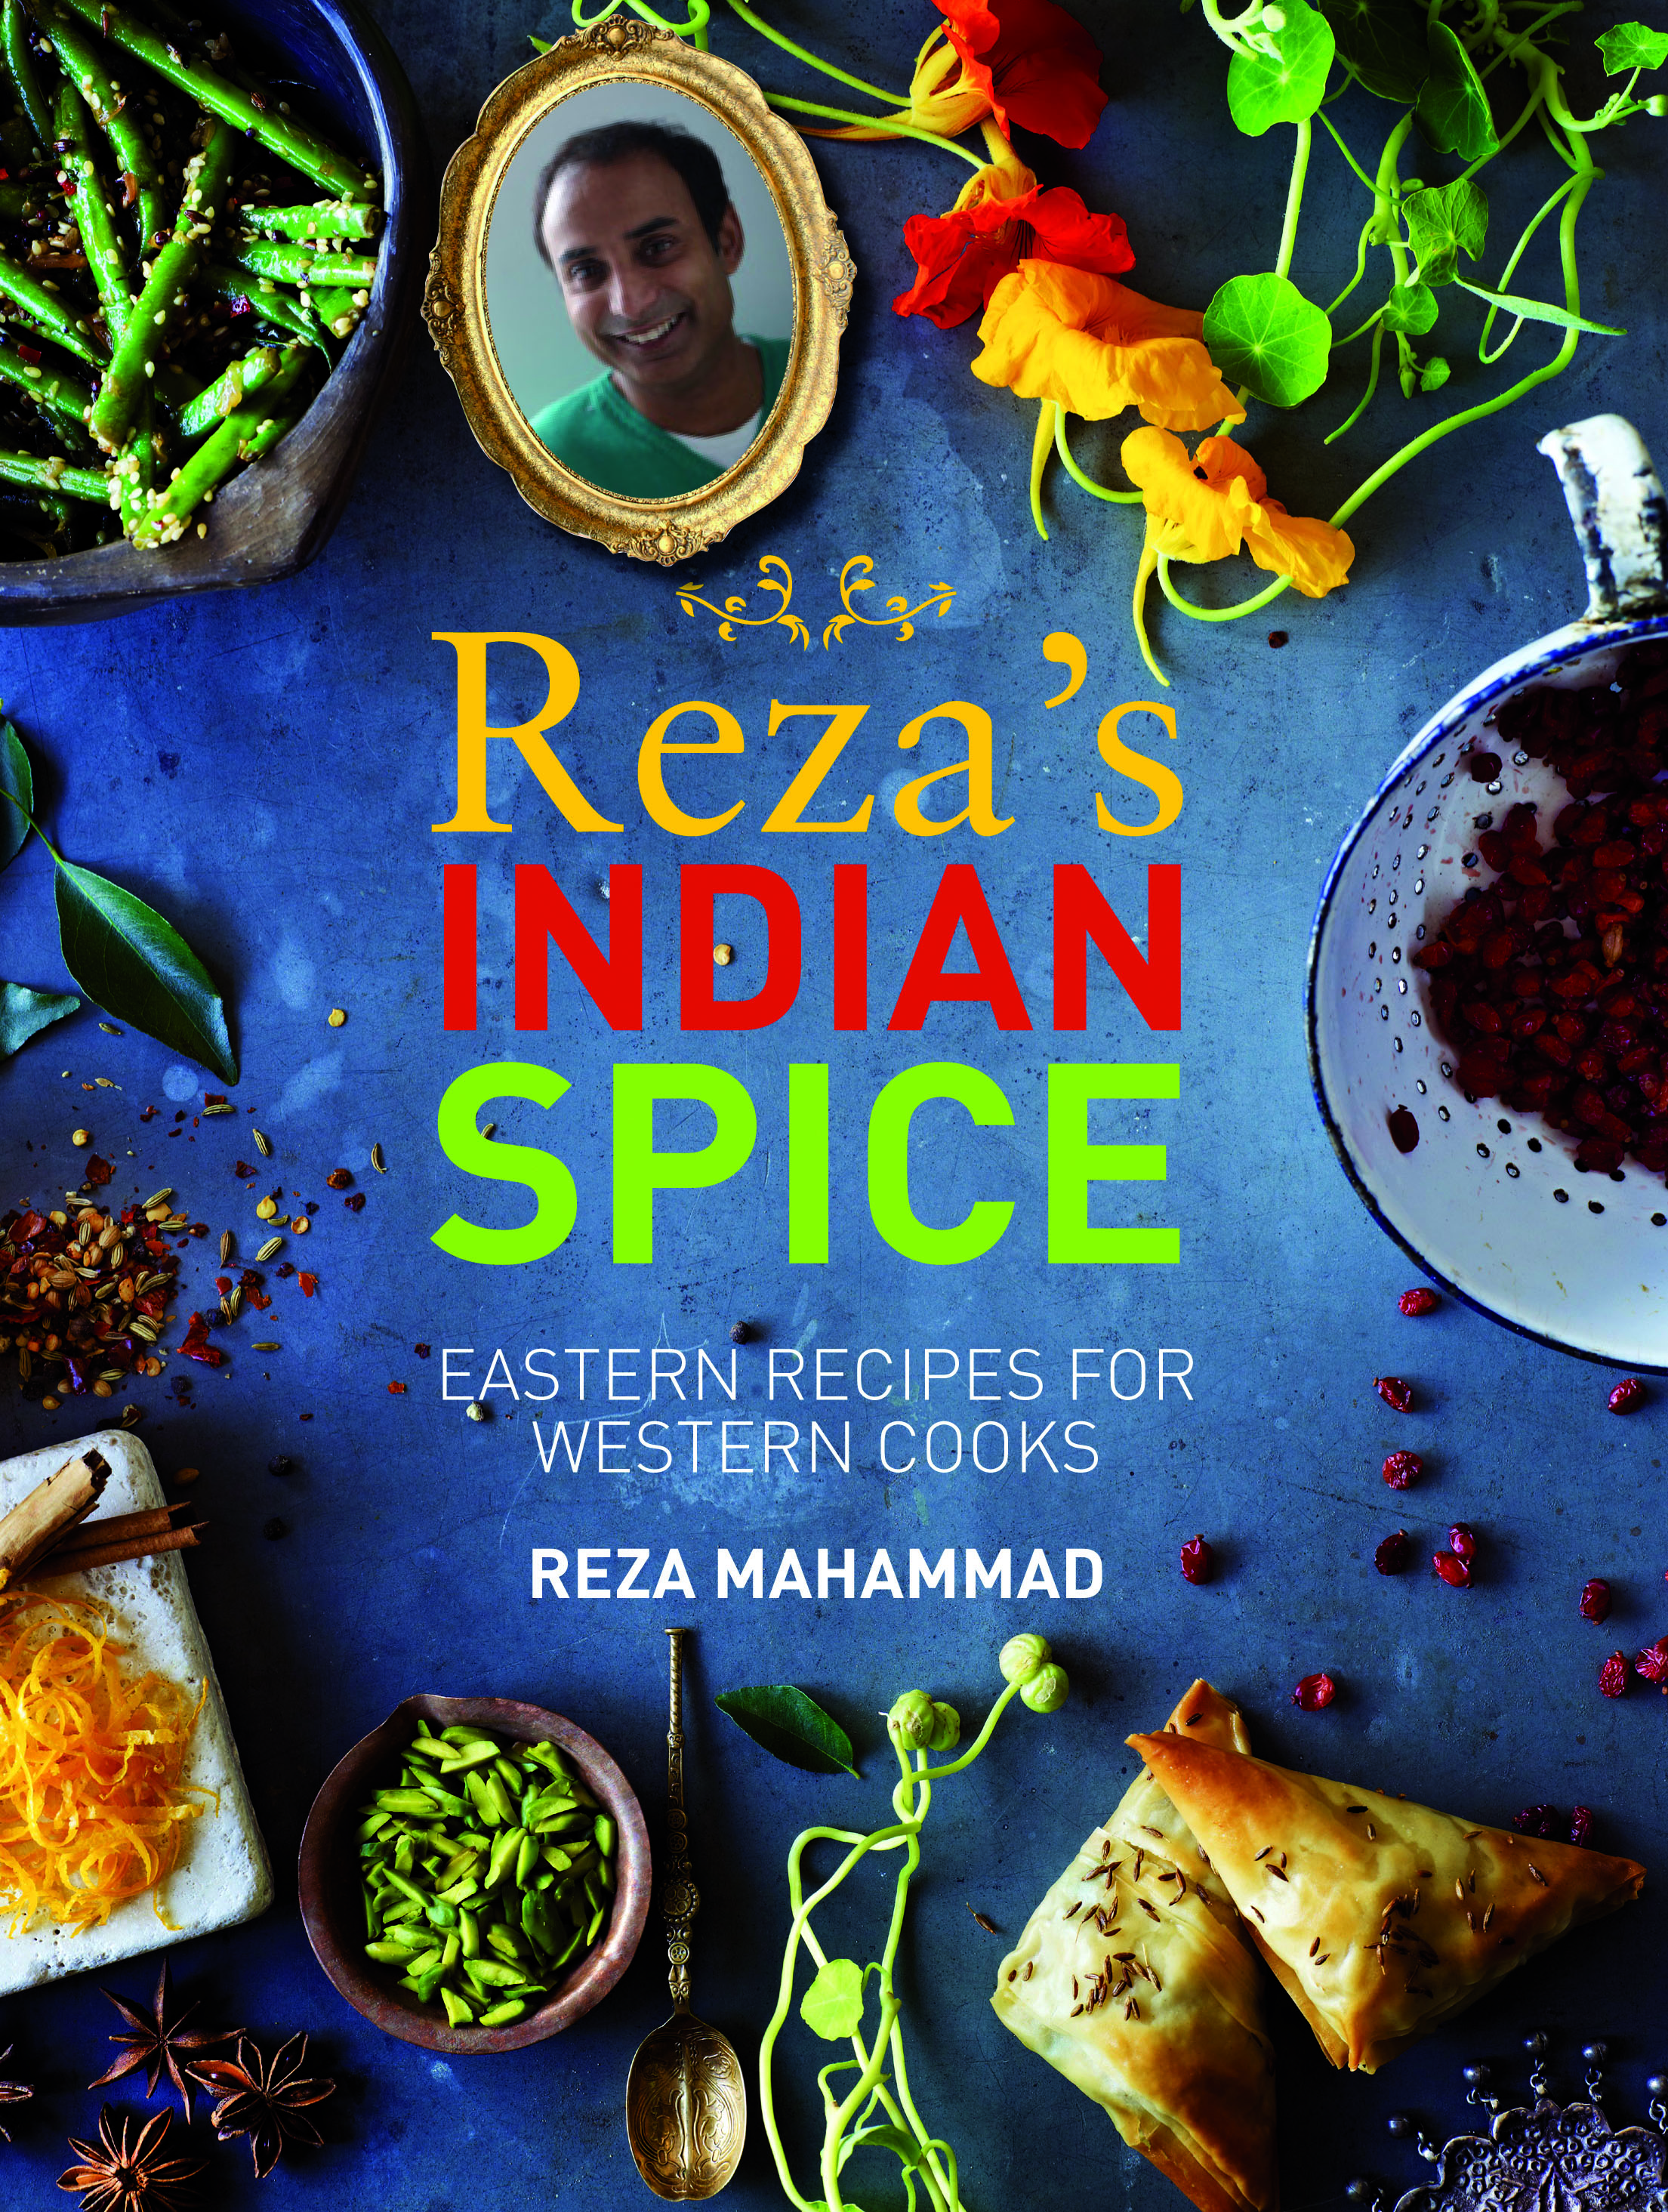 Reza's Indian Spice